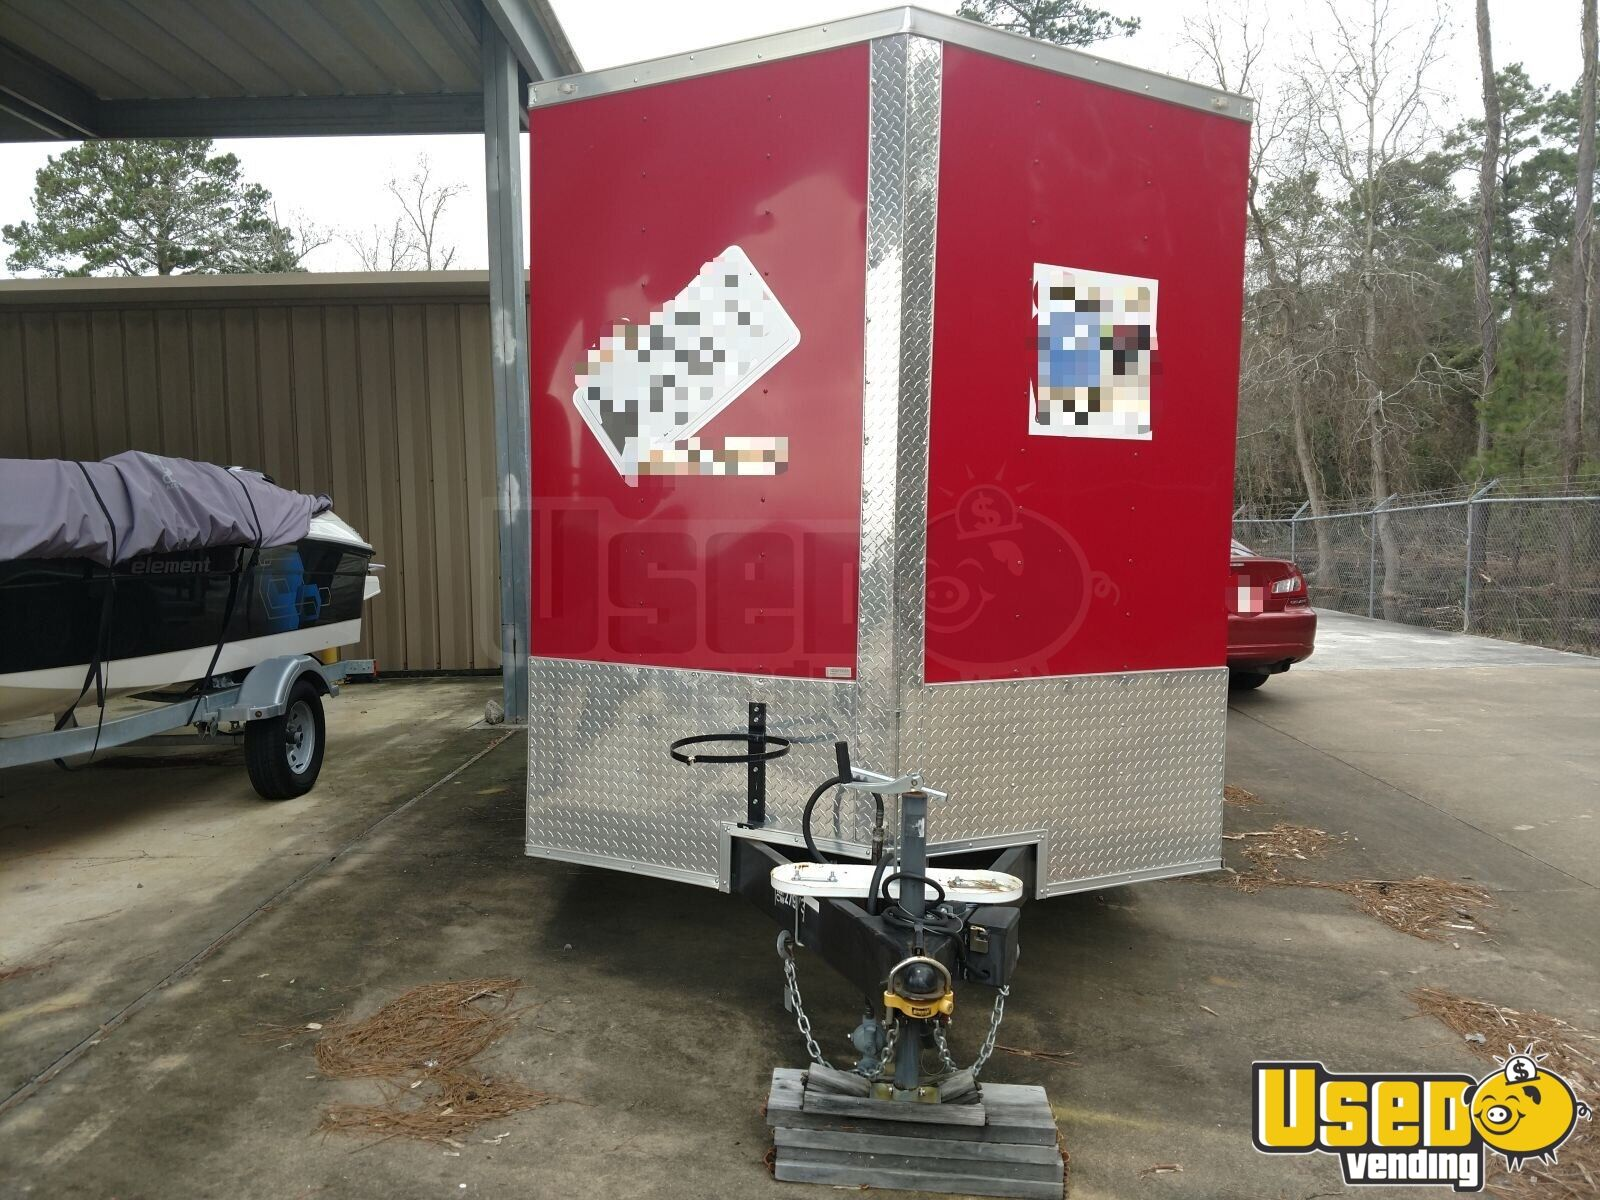 2017 2018 Gvwr:7000 Barbecue Food Trailer Concession Window Texas for Sale - 2